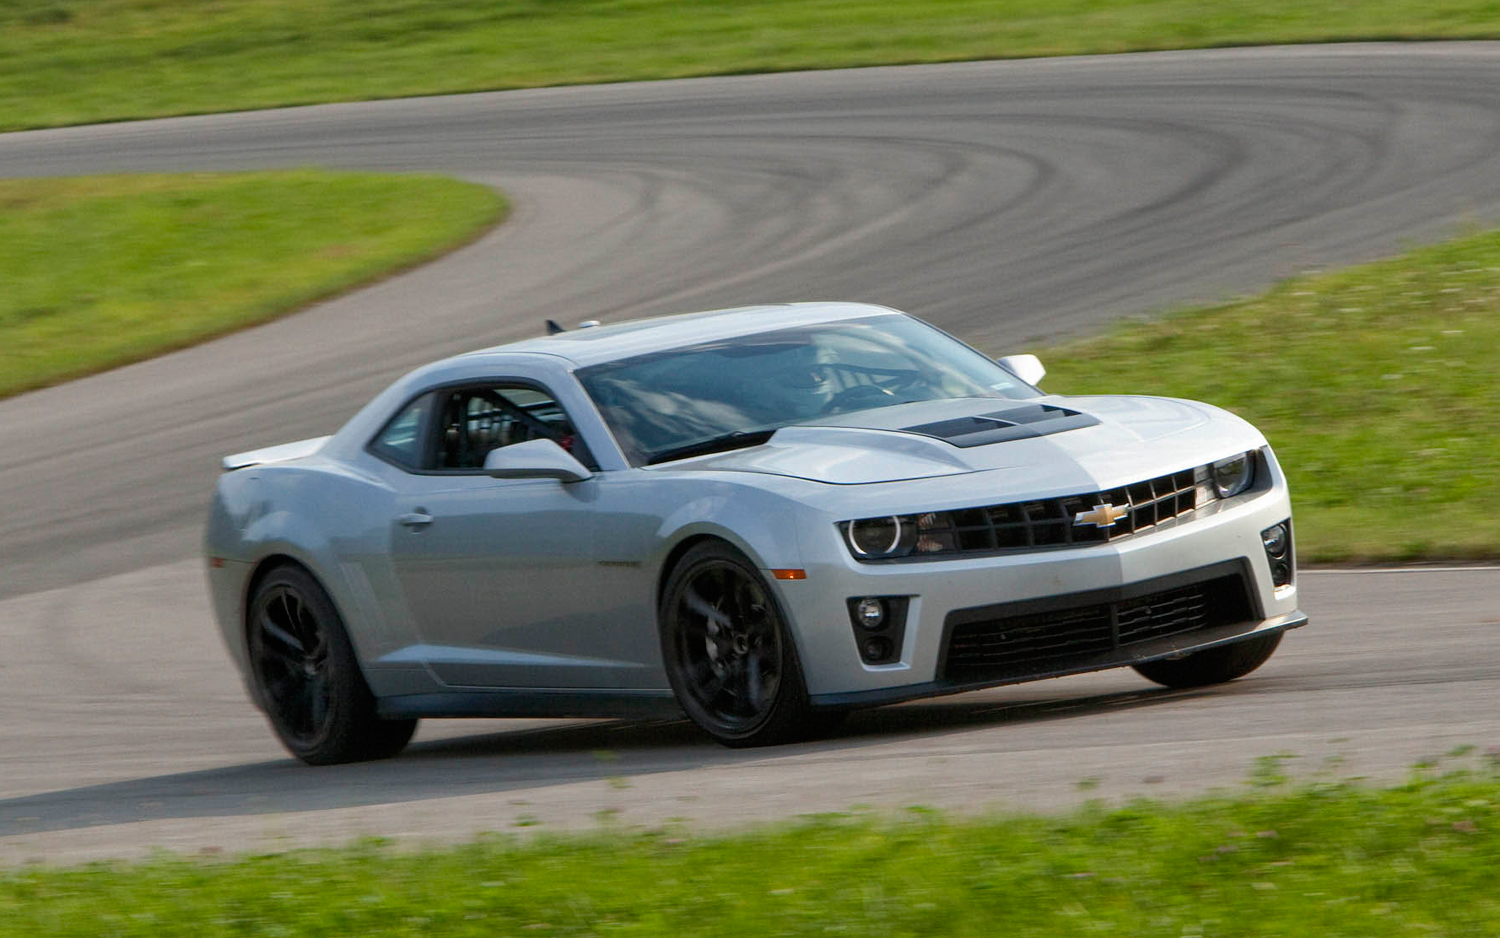 2012 Chevy Camaro ZL1 Makes 580 Horsepower - Motor Trend